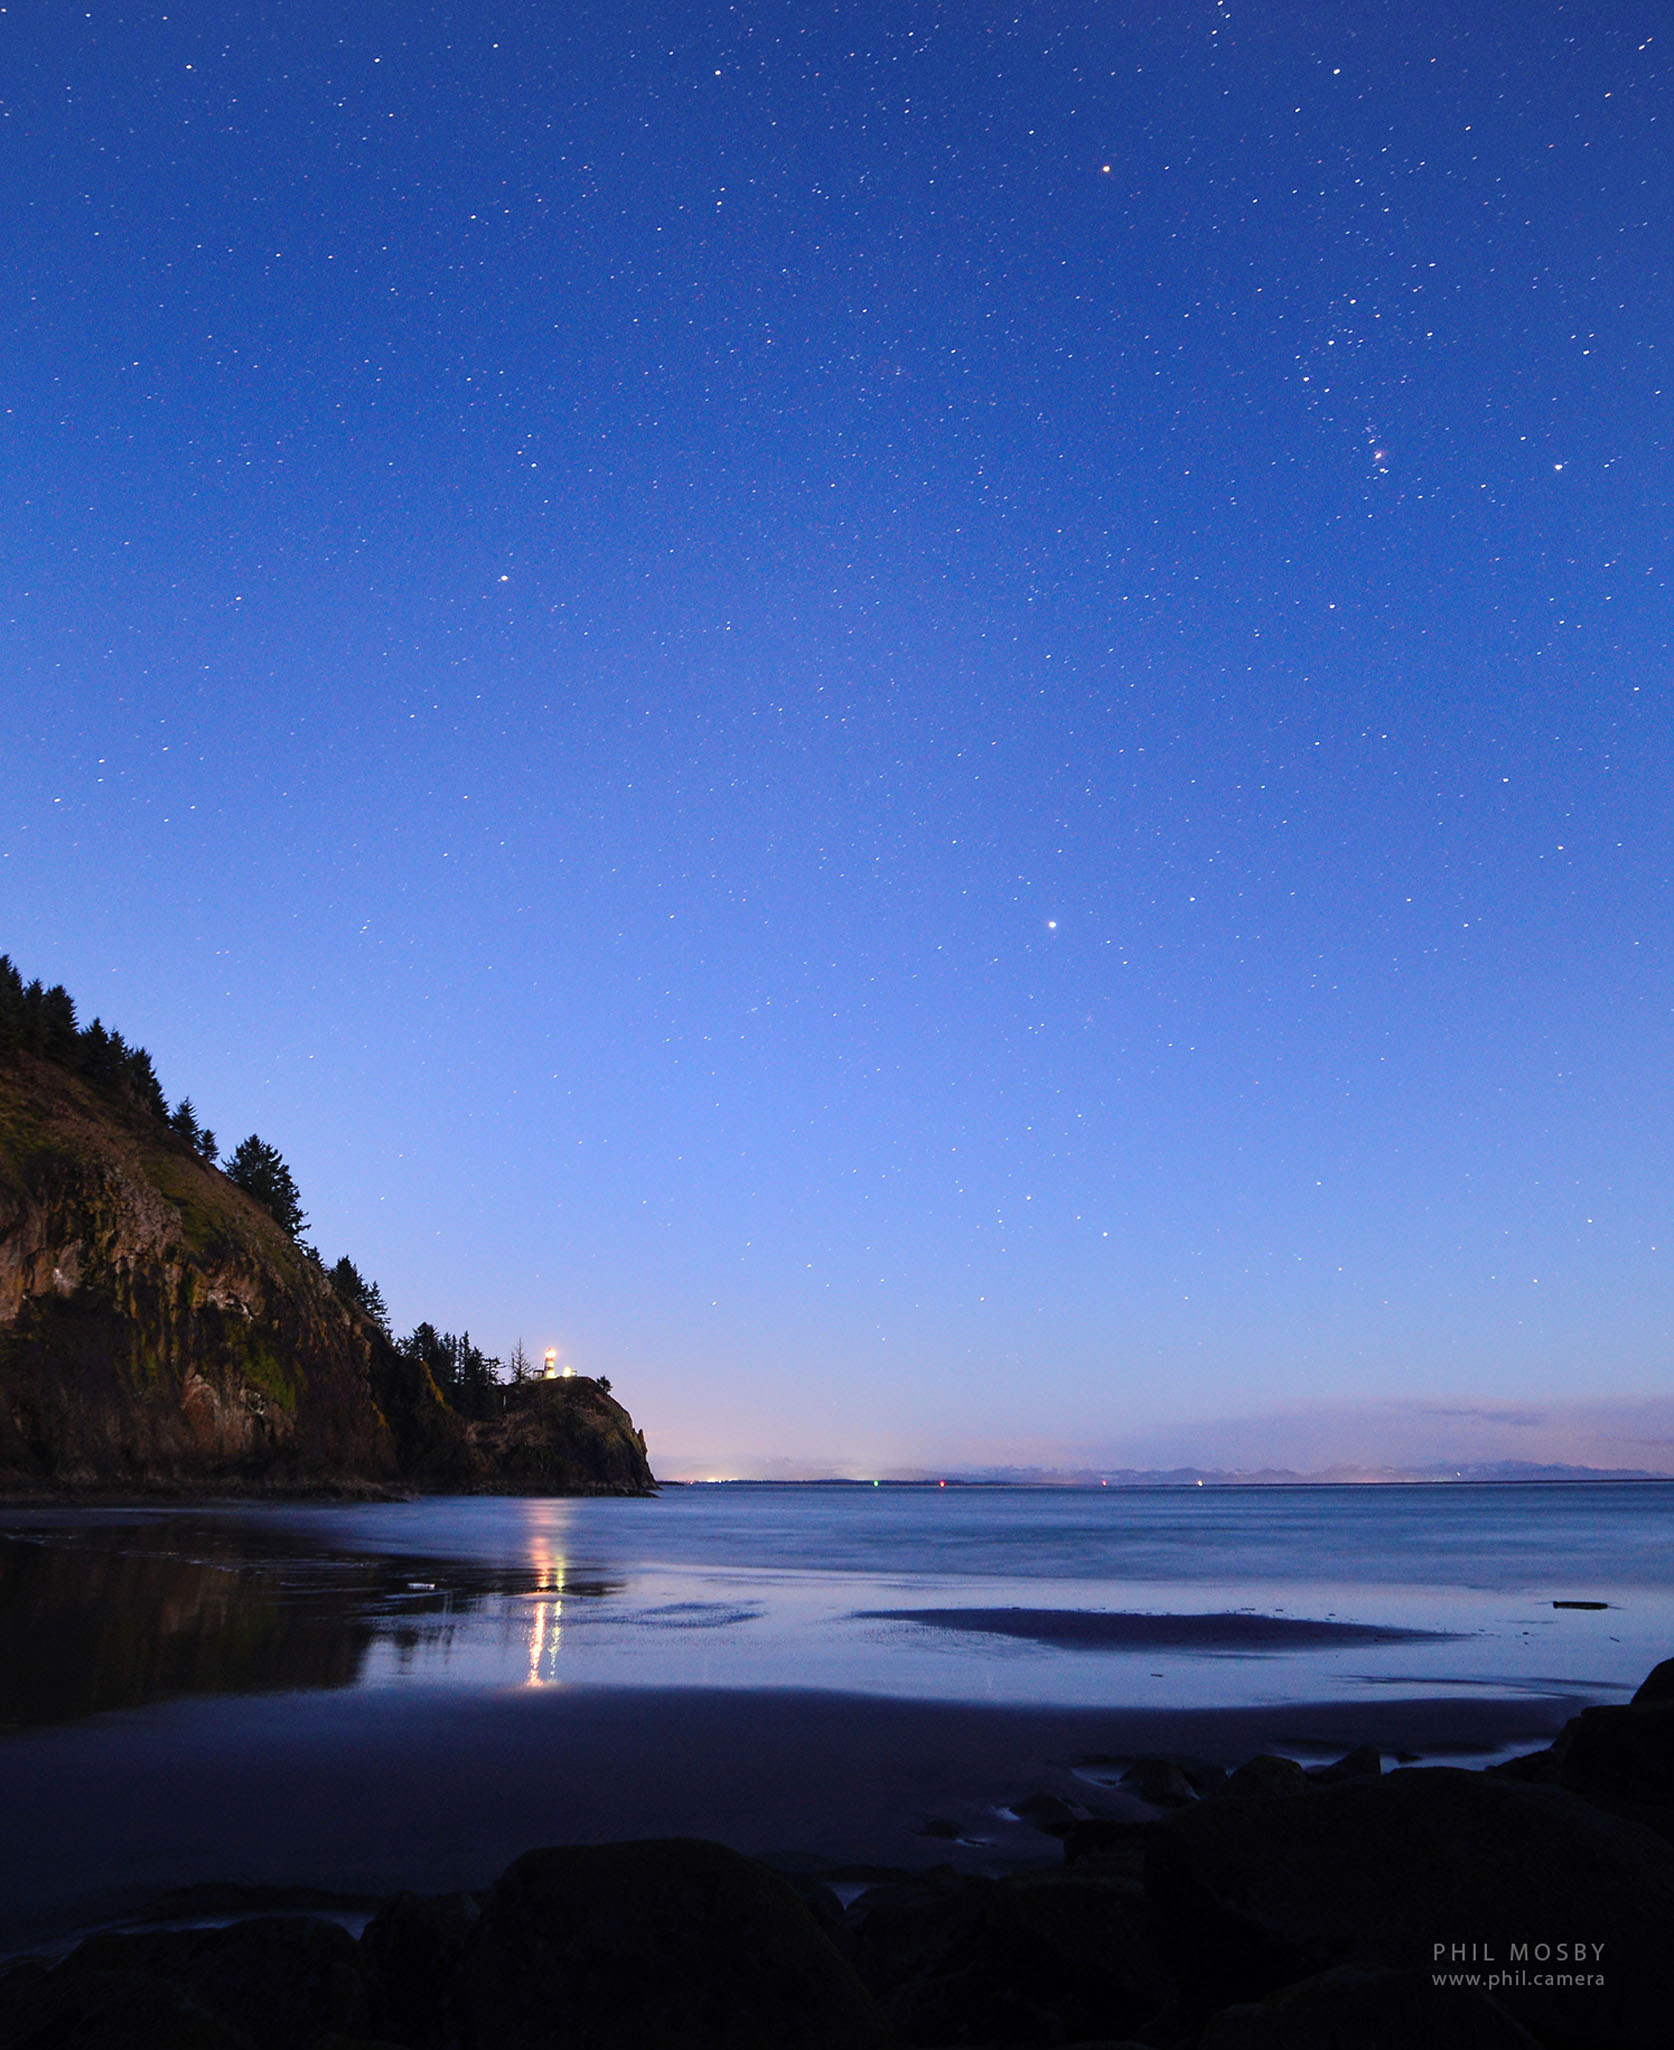 Cape Disappointment Light House, Wa